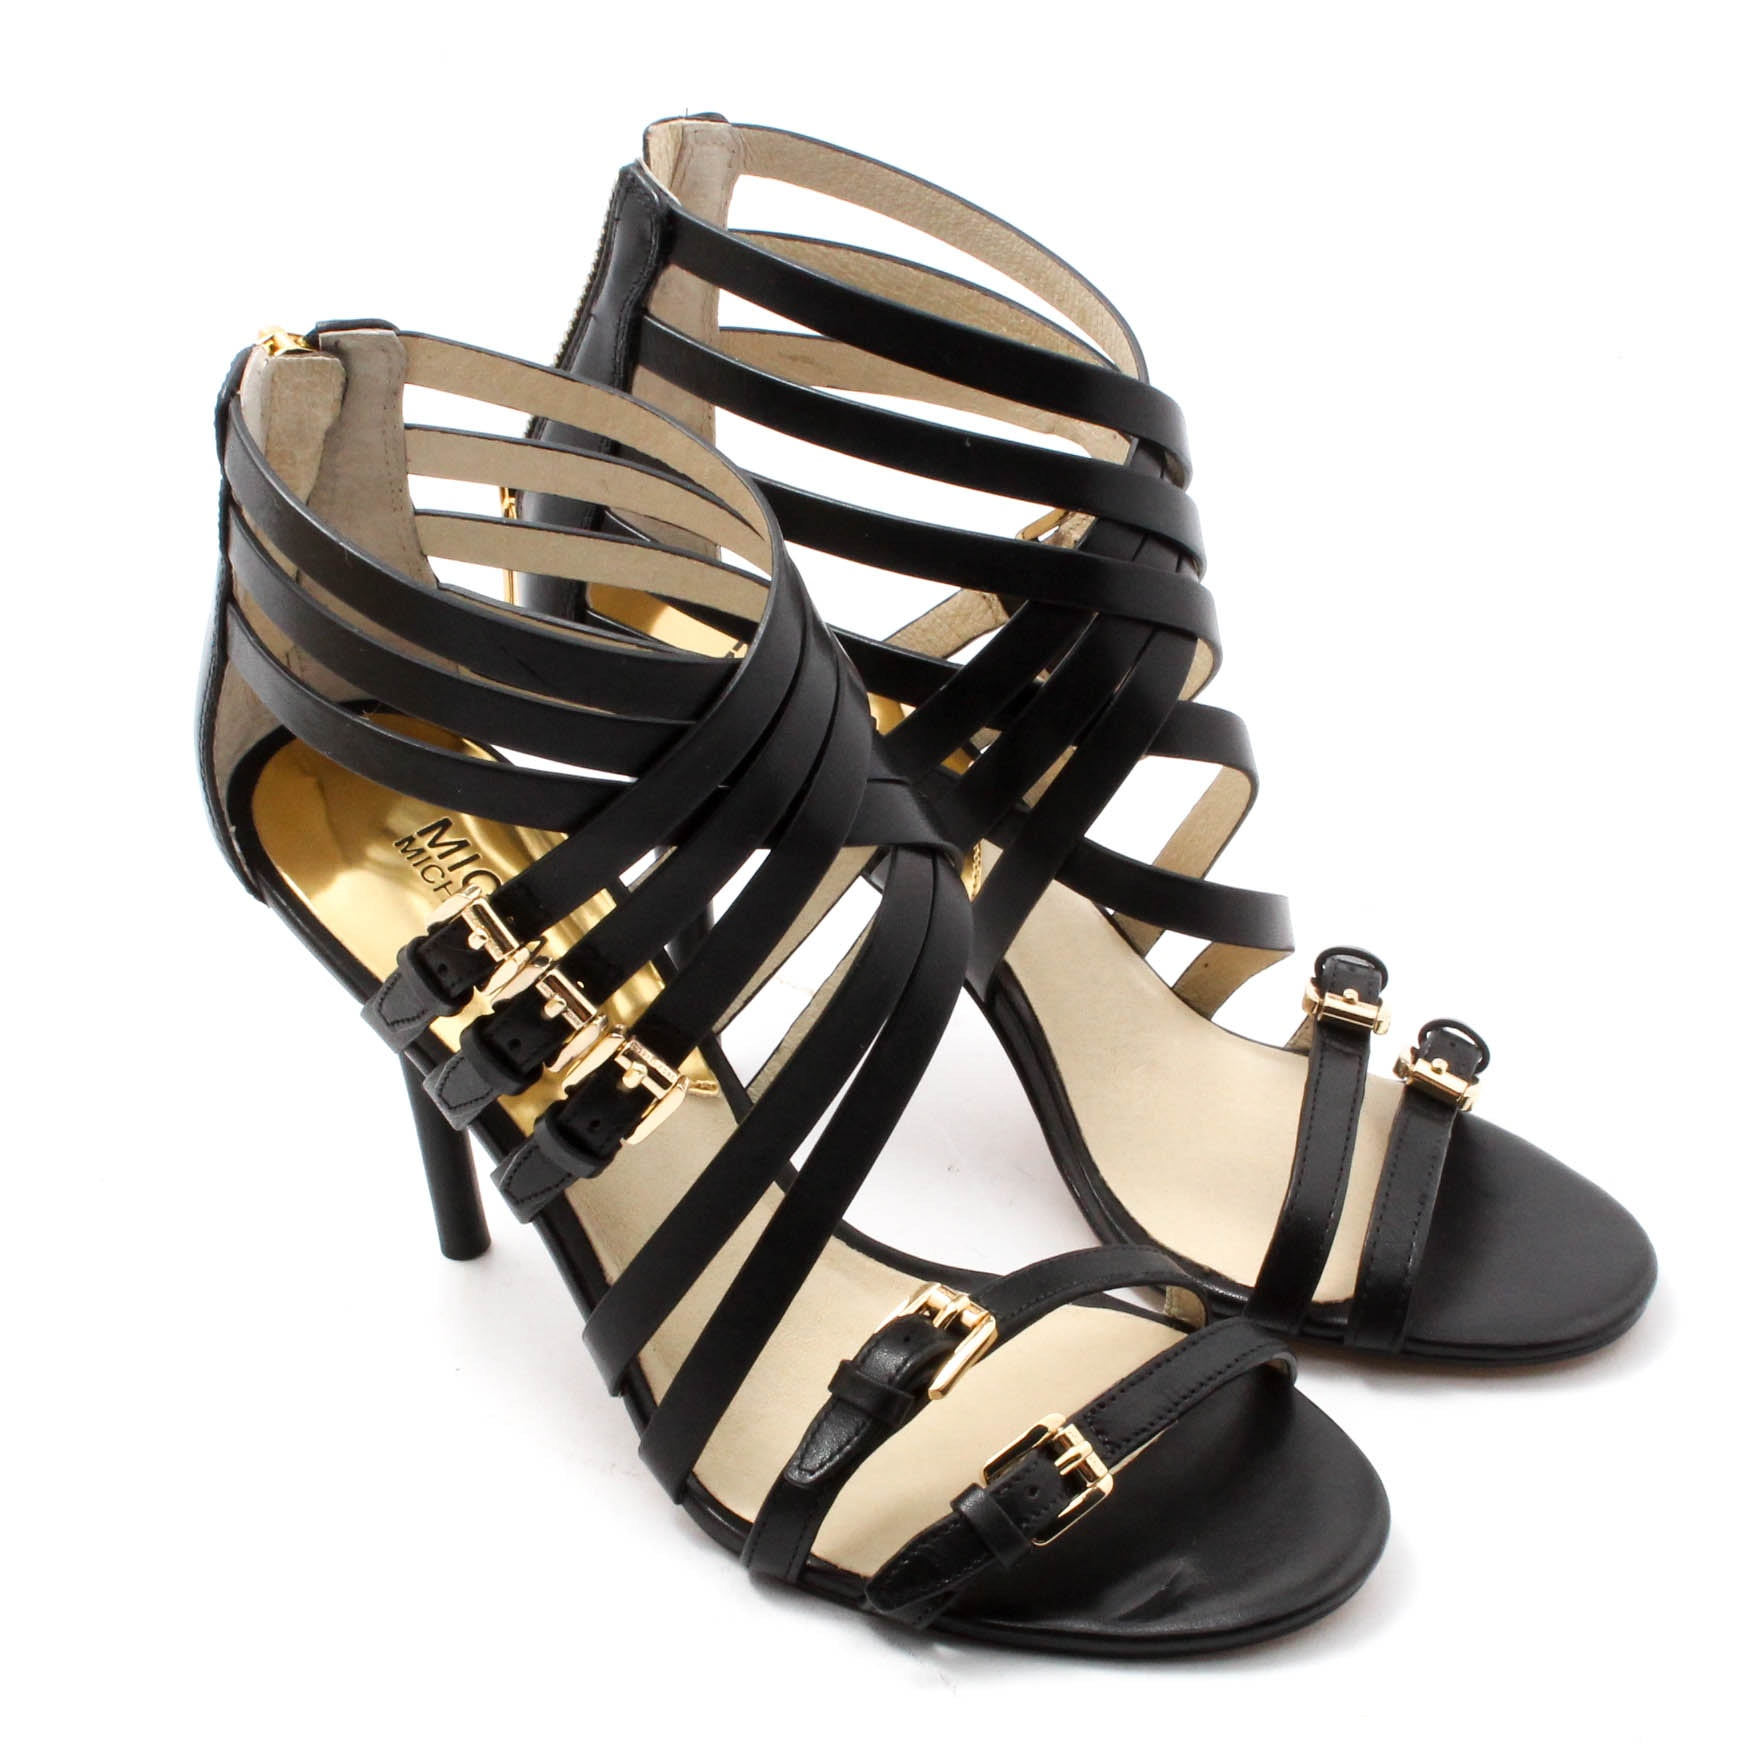 MICHAEL Michael Kors Black Strappy Leather Heels